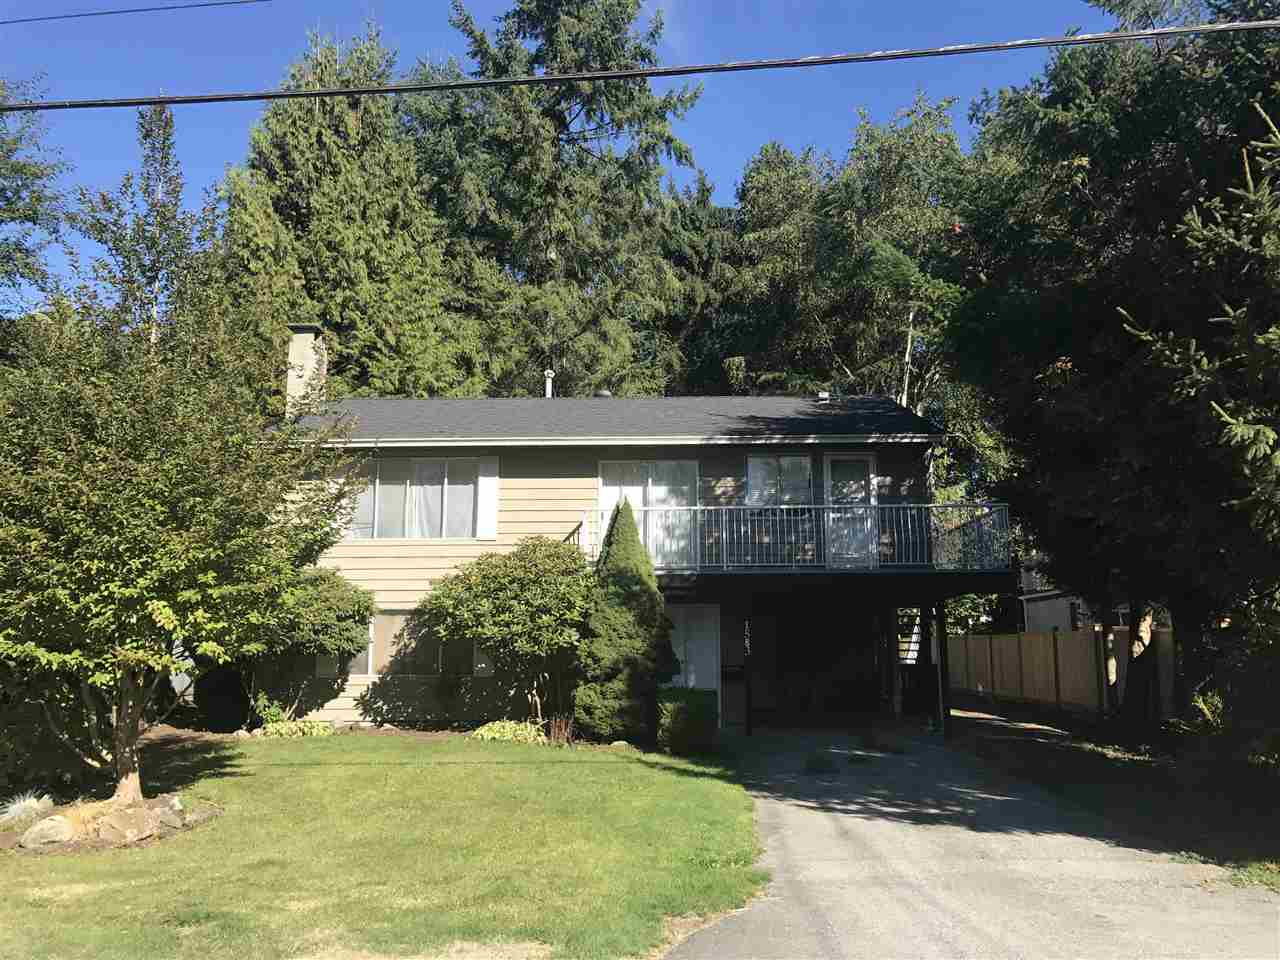 HUGE FLAT LOT ON VERY DESIRABLE STREET. HOUSE IS READY FOR YOUR RENOVATION IDEAS 3 BDRMS UP & POSSIBLE 1 OR 2 BDRM SUITE DOWN, 2 YEAR OLD ROOF CLOSE TO ALL AMENITIES NEAR TERRY FOX HIGH SCHOOL.  ALL MEASUREMENTS APPROX. THE HOUSE IS SOLD 'AS IS , WHERE IS' OPEN HOUSE SAT (OCT 21) 2-4 PM